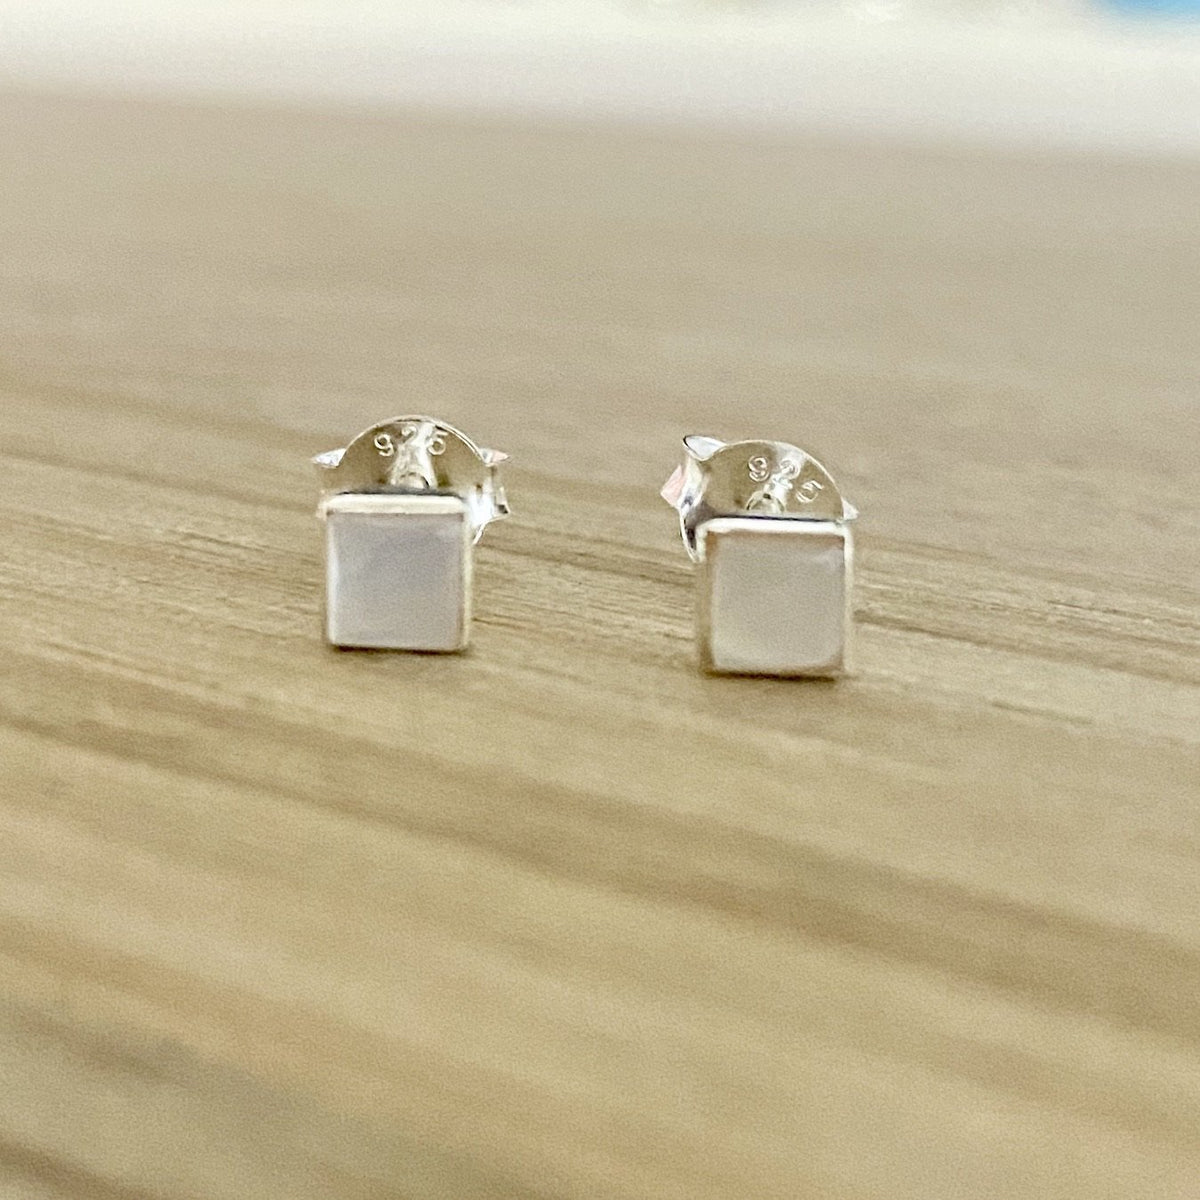 Laihas Mini Mother of Pearl Earrings- Simple Studs - Laihas Bohemian Dreaming